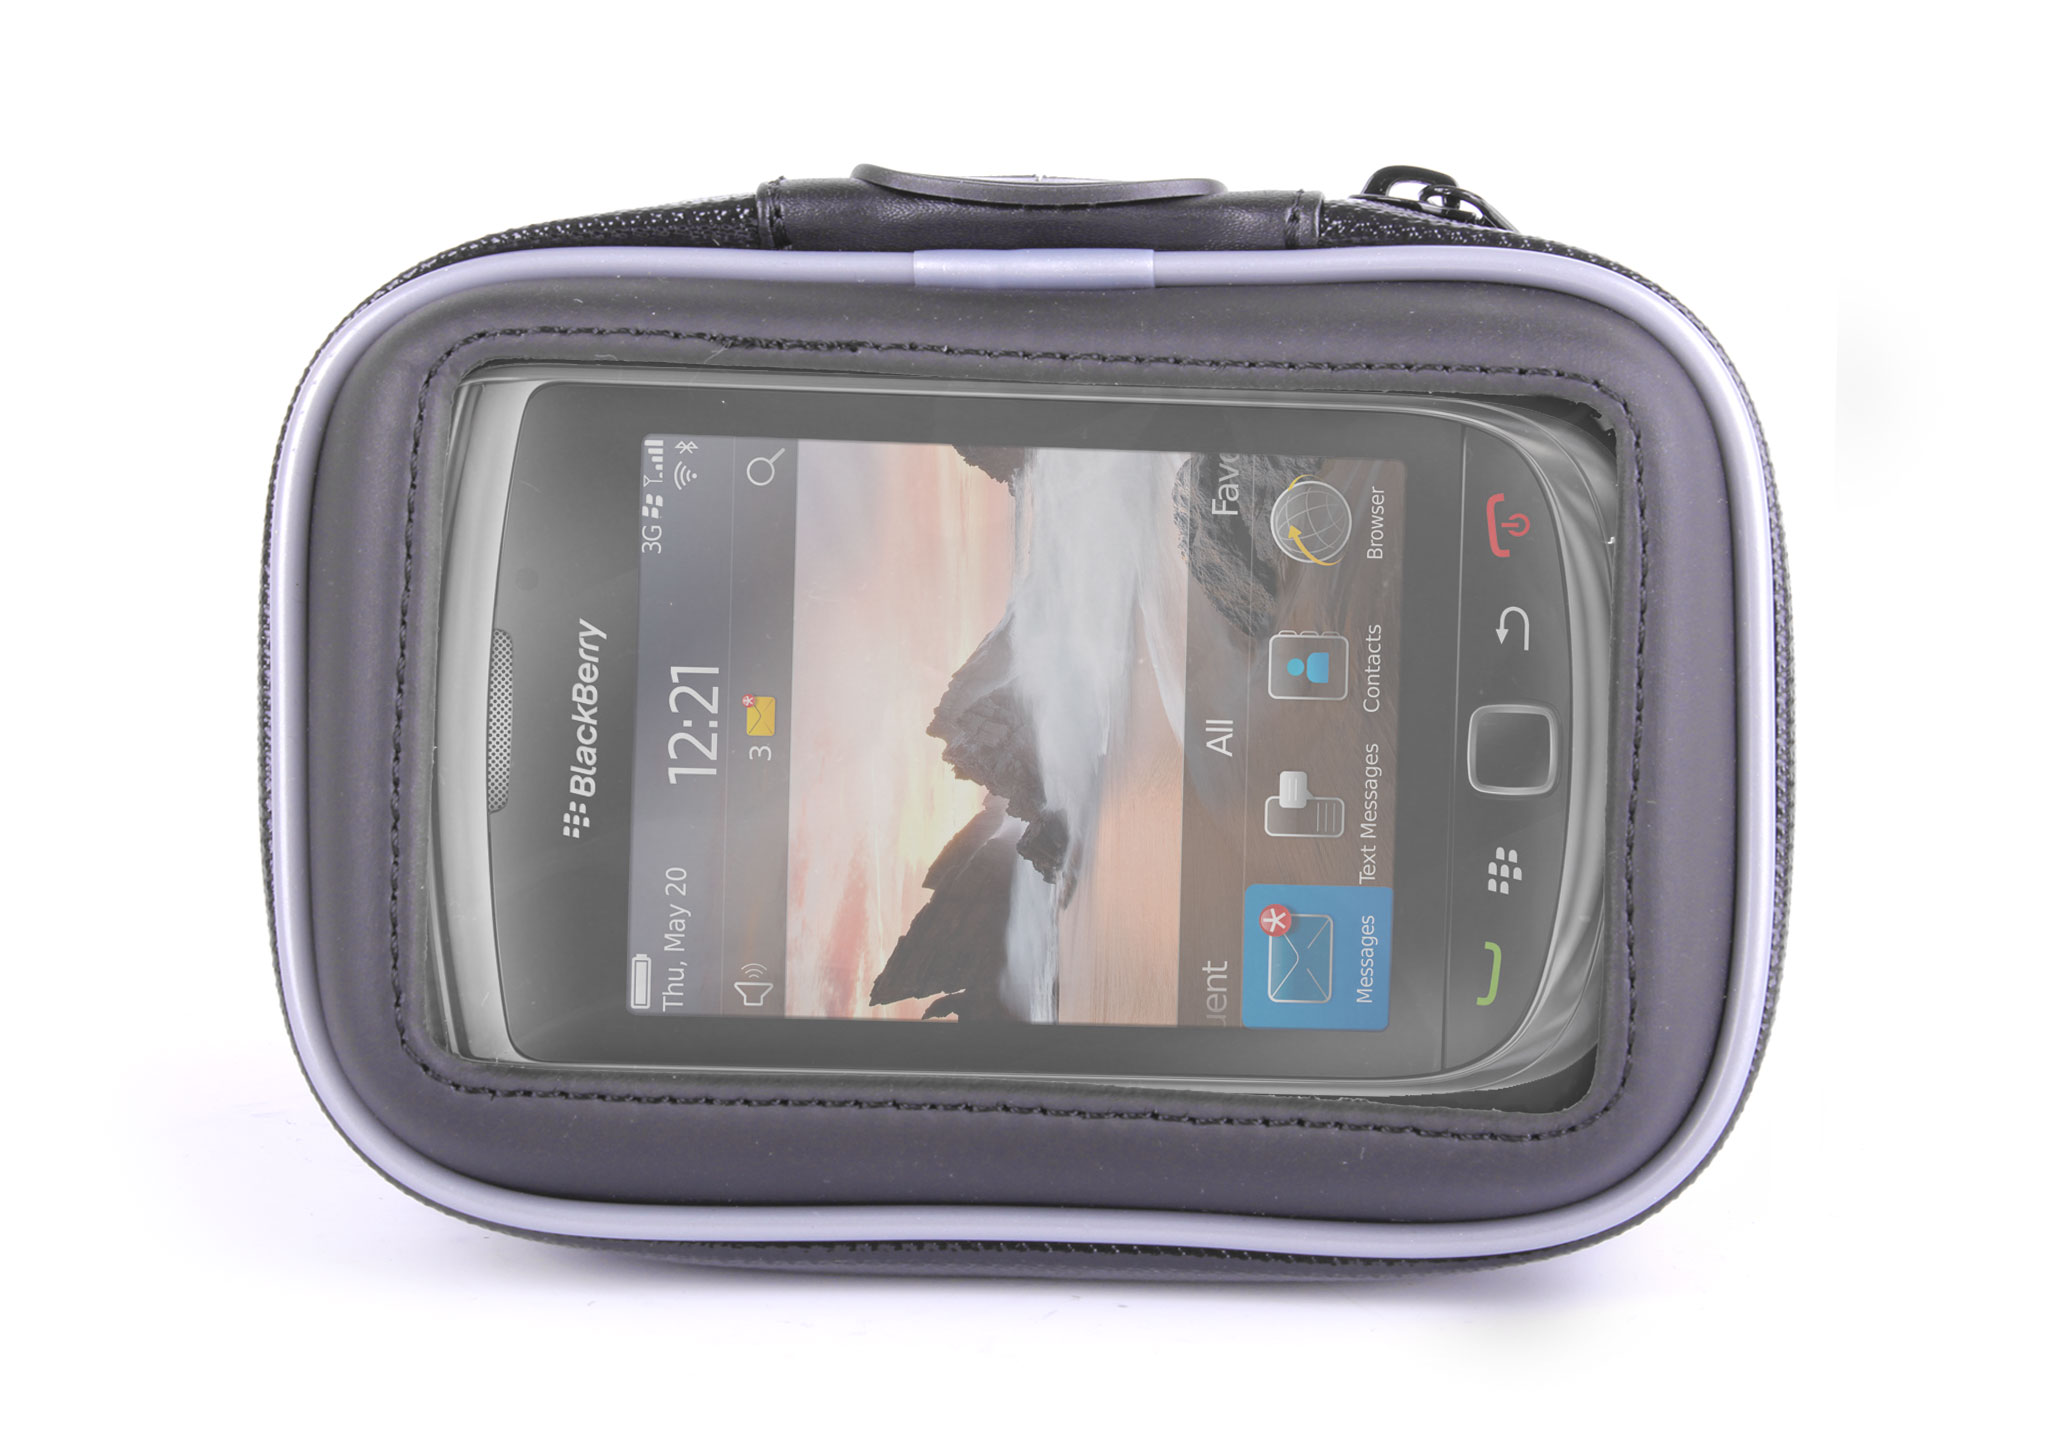 Holder/Case For Blackberry Torch 9800 Mobile Phone w/ Mountain Bike Mount/Stand Enlarged Preview